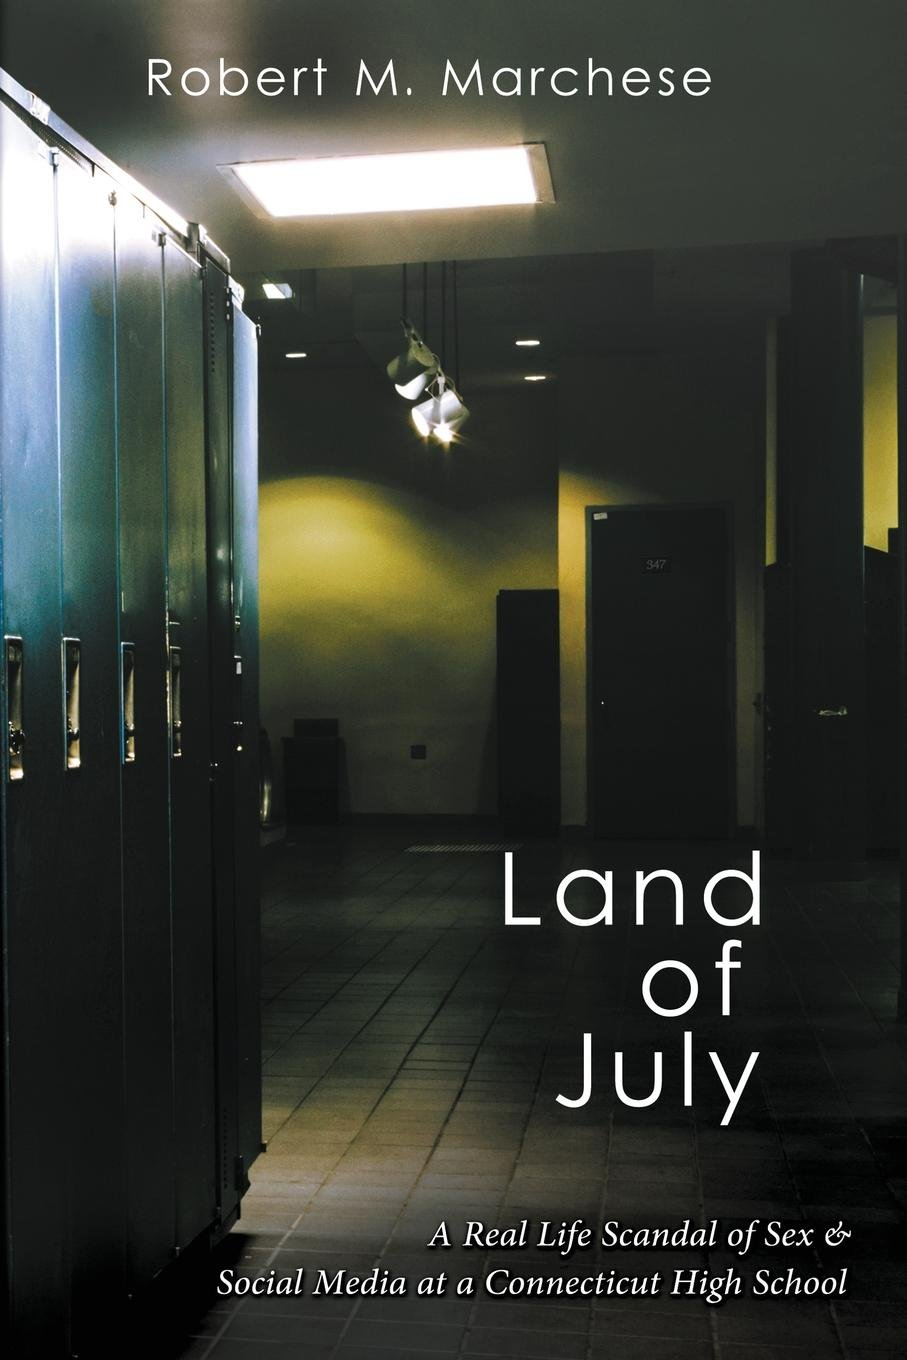 Download Land of July: A Real Life Scandal of Sex & Social Media at a Connecticut High School PDF